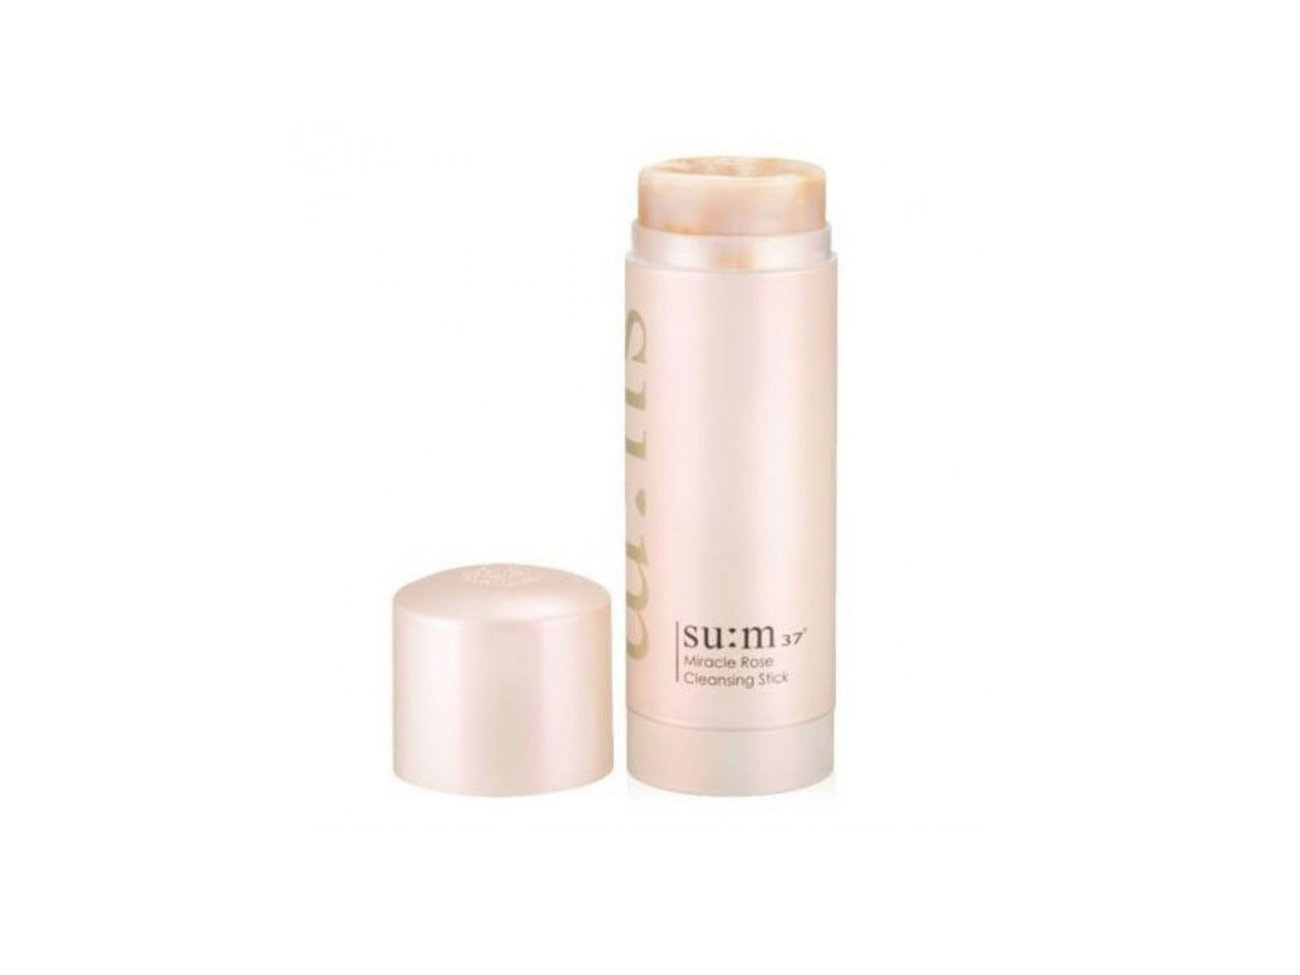 Su-m-37-Miracle-Rose-Cleanser-PROD0816.jpg